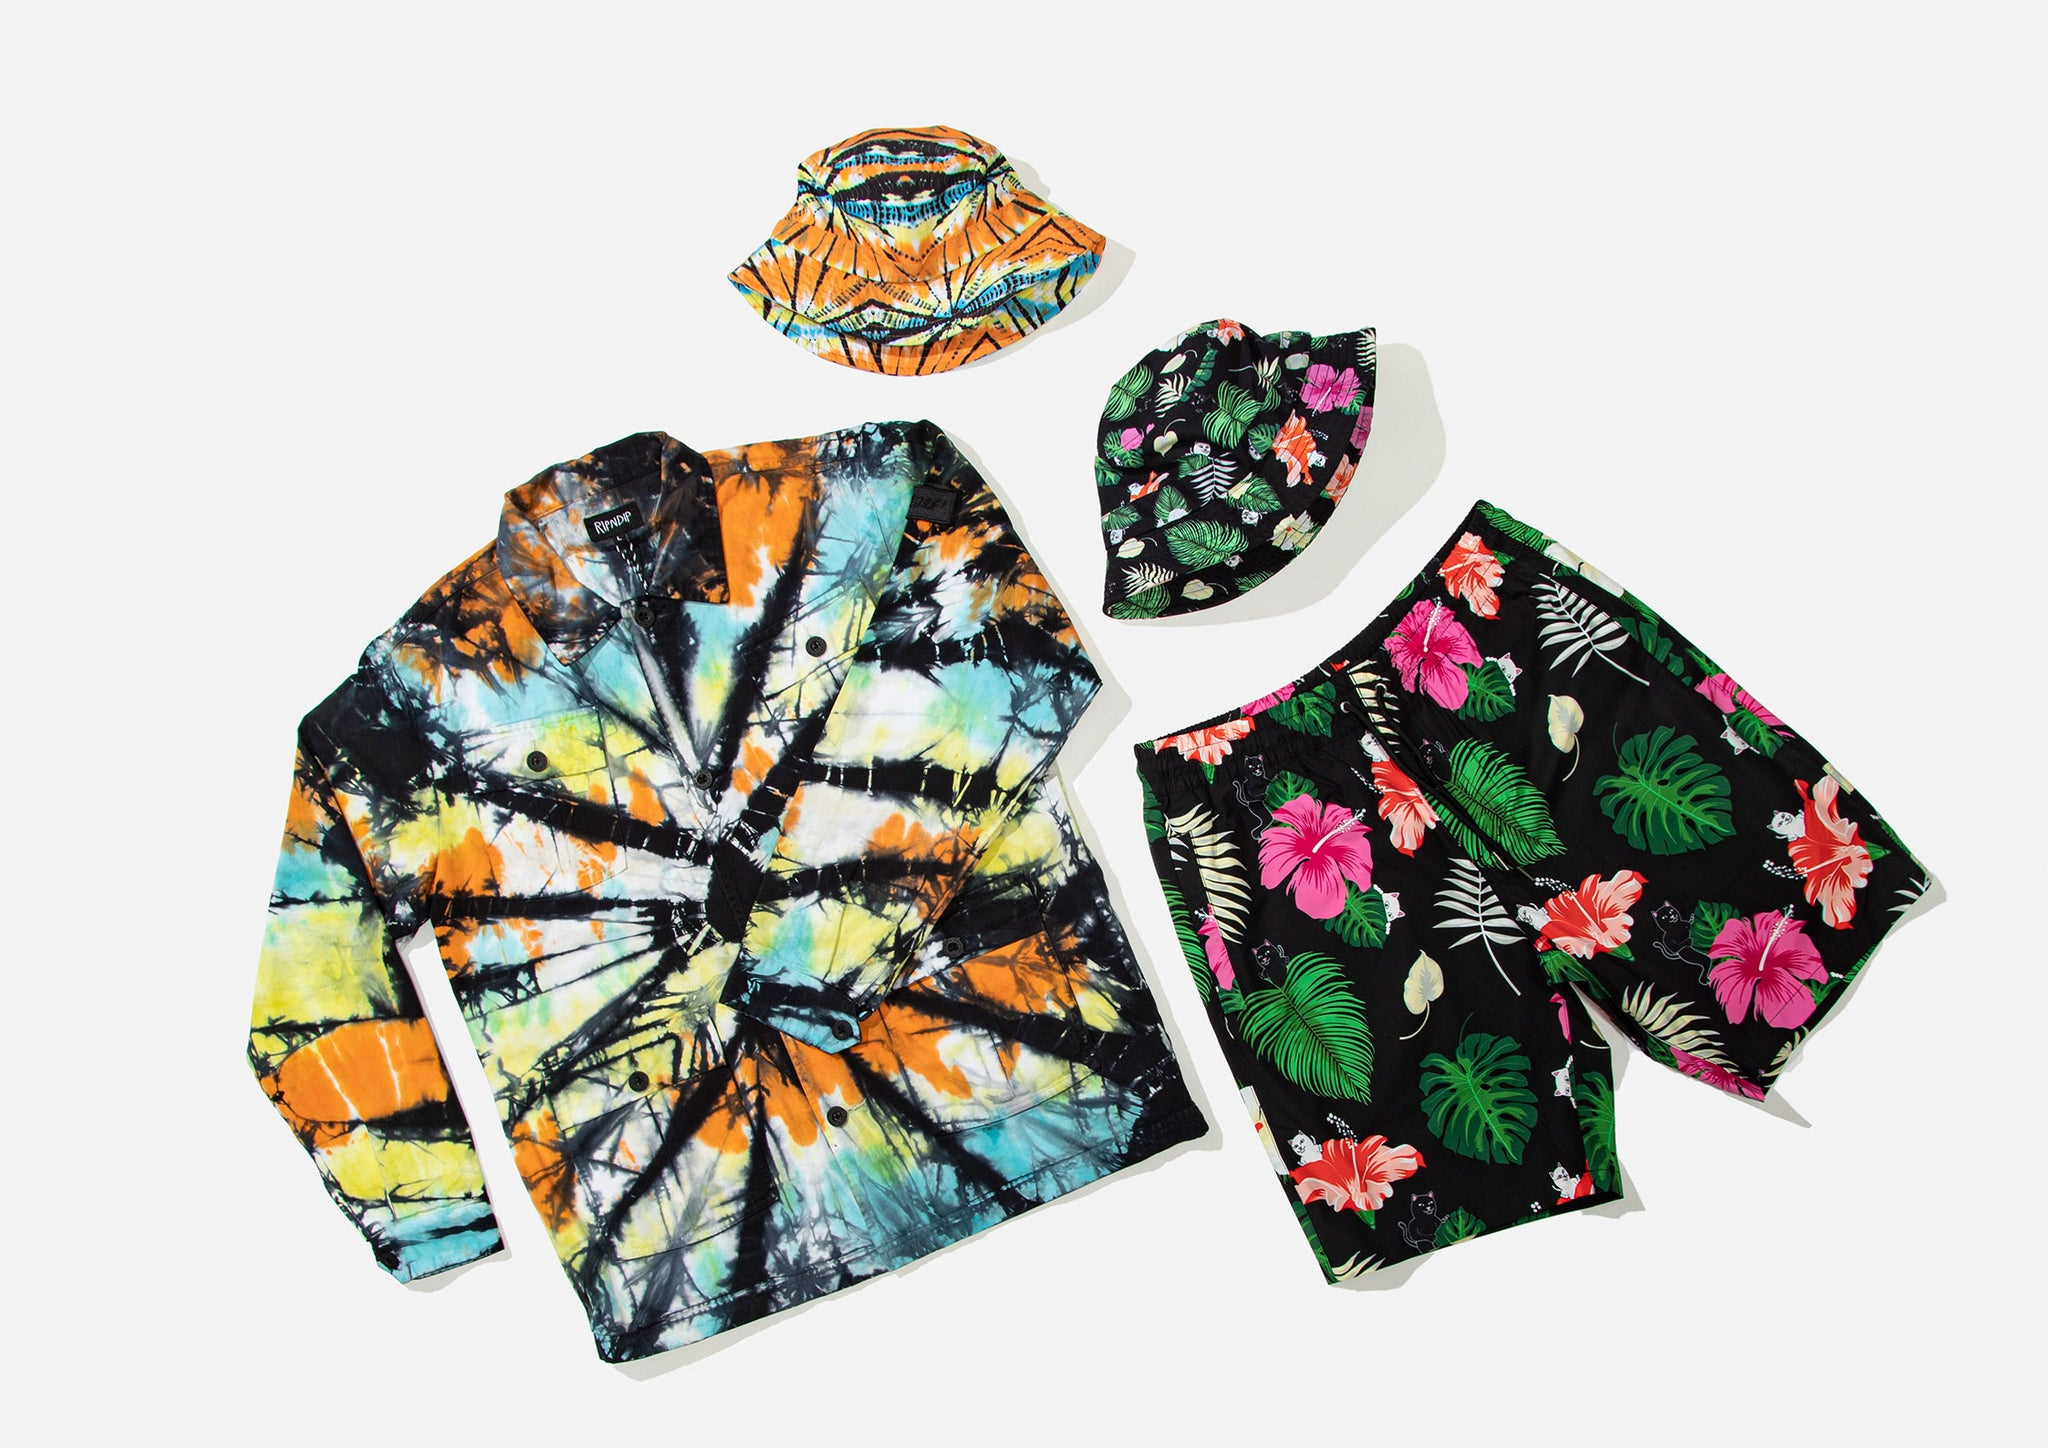 RIPNDIP FW20 Tie-Dye Button-Up Shirt, Bucket Hat, Hawaiian Bucket Hat and Shorts